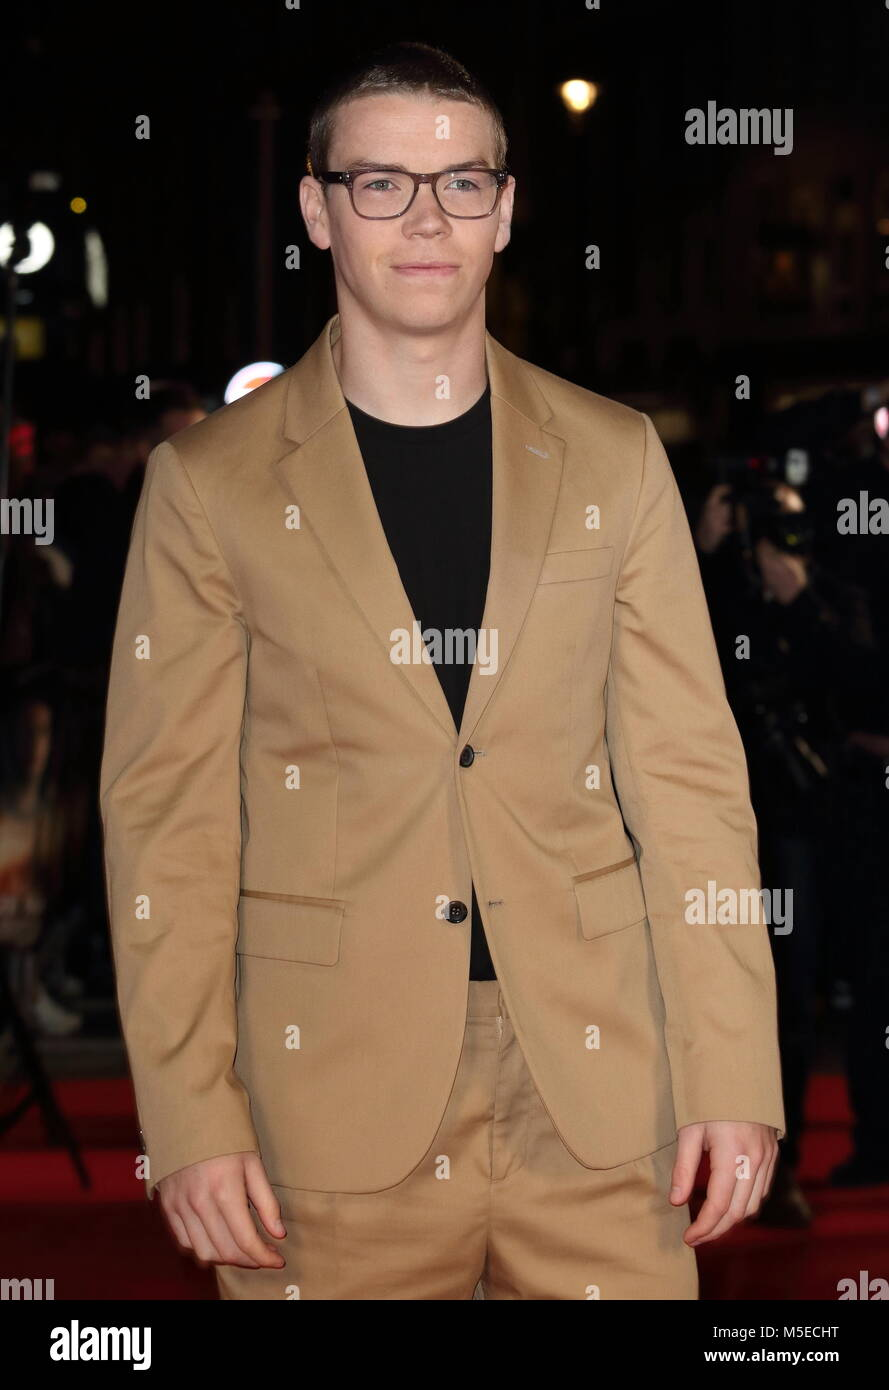 Maze Runner: The Death Cure UK Fan Screening at Vue West End in Leicester Square - Arrivals  Featuring: Will Poulter - Stock Image